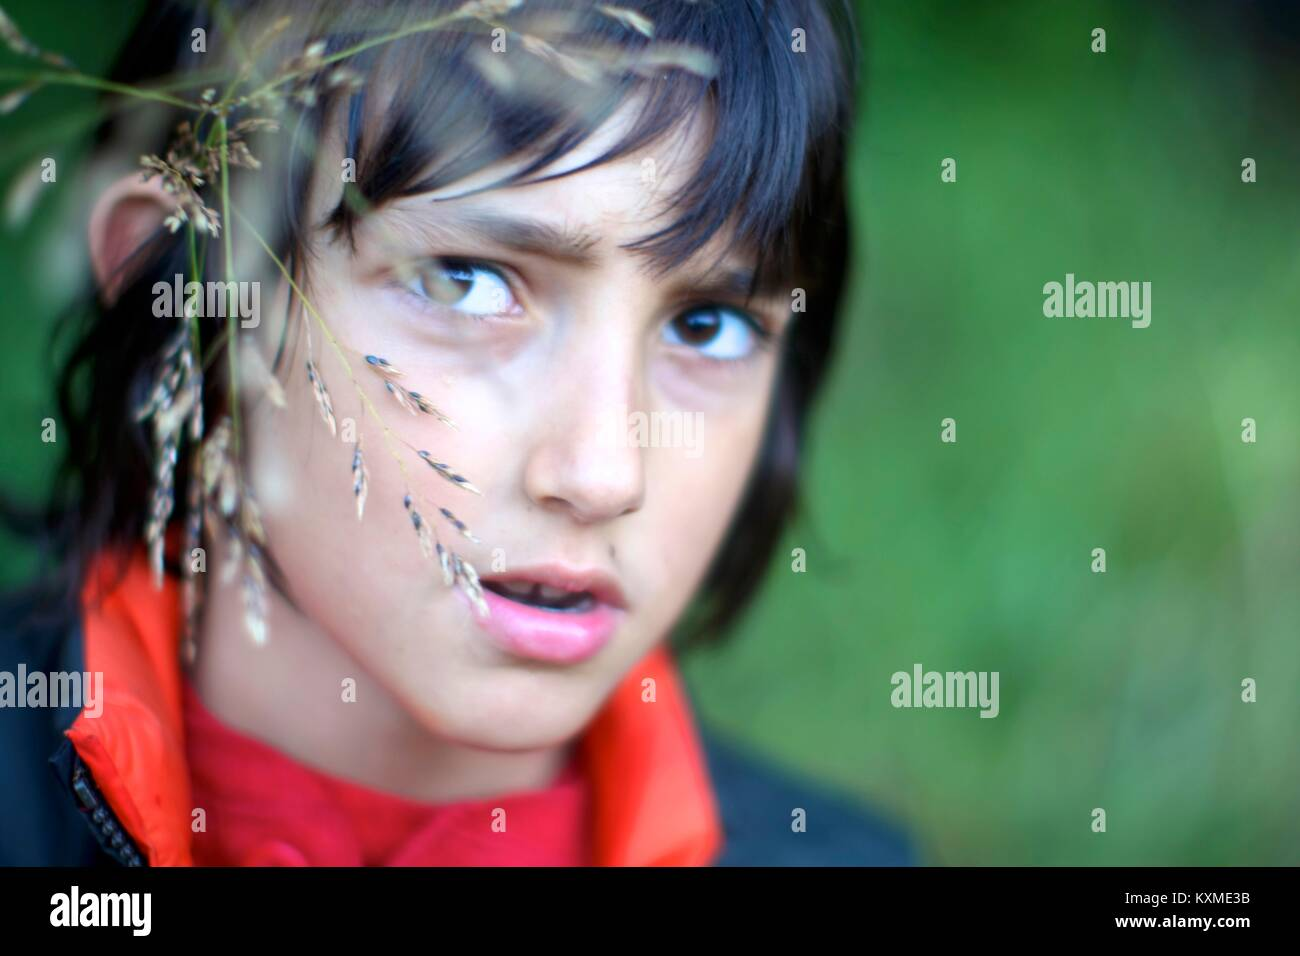 Kid in tall grass - Stock Image